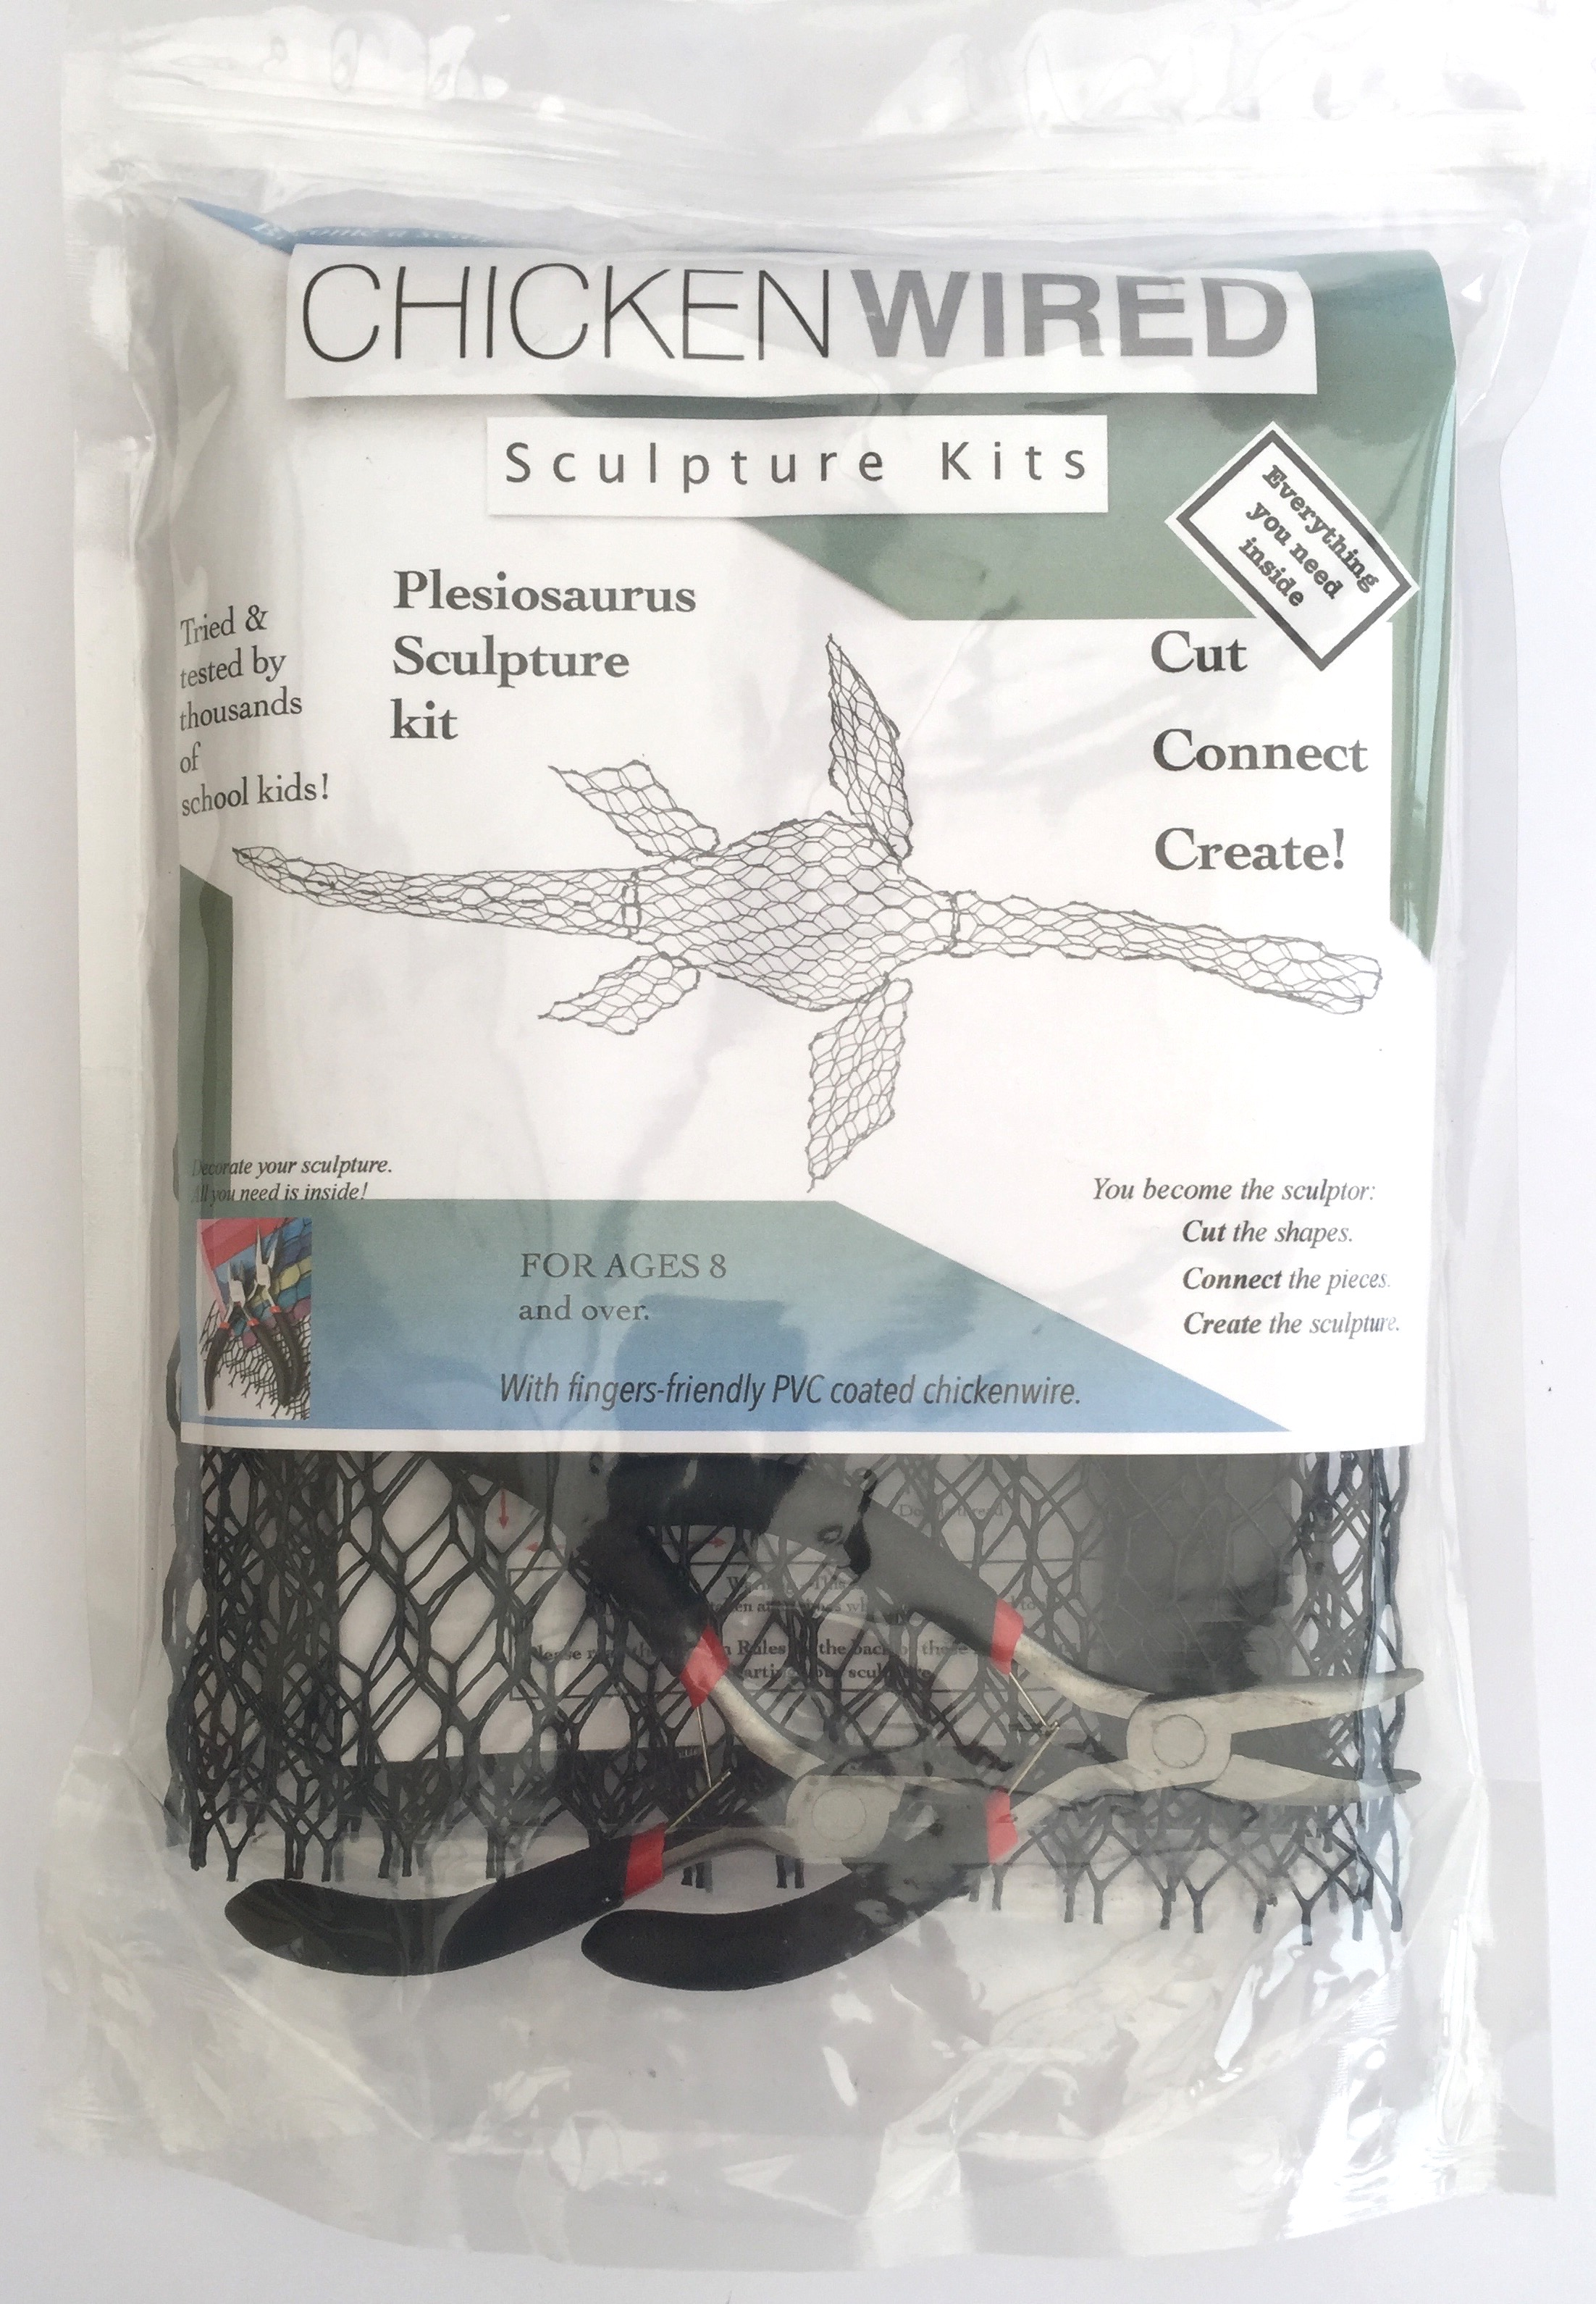 Sculpture Kits | Chicken Wired